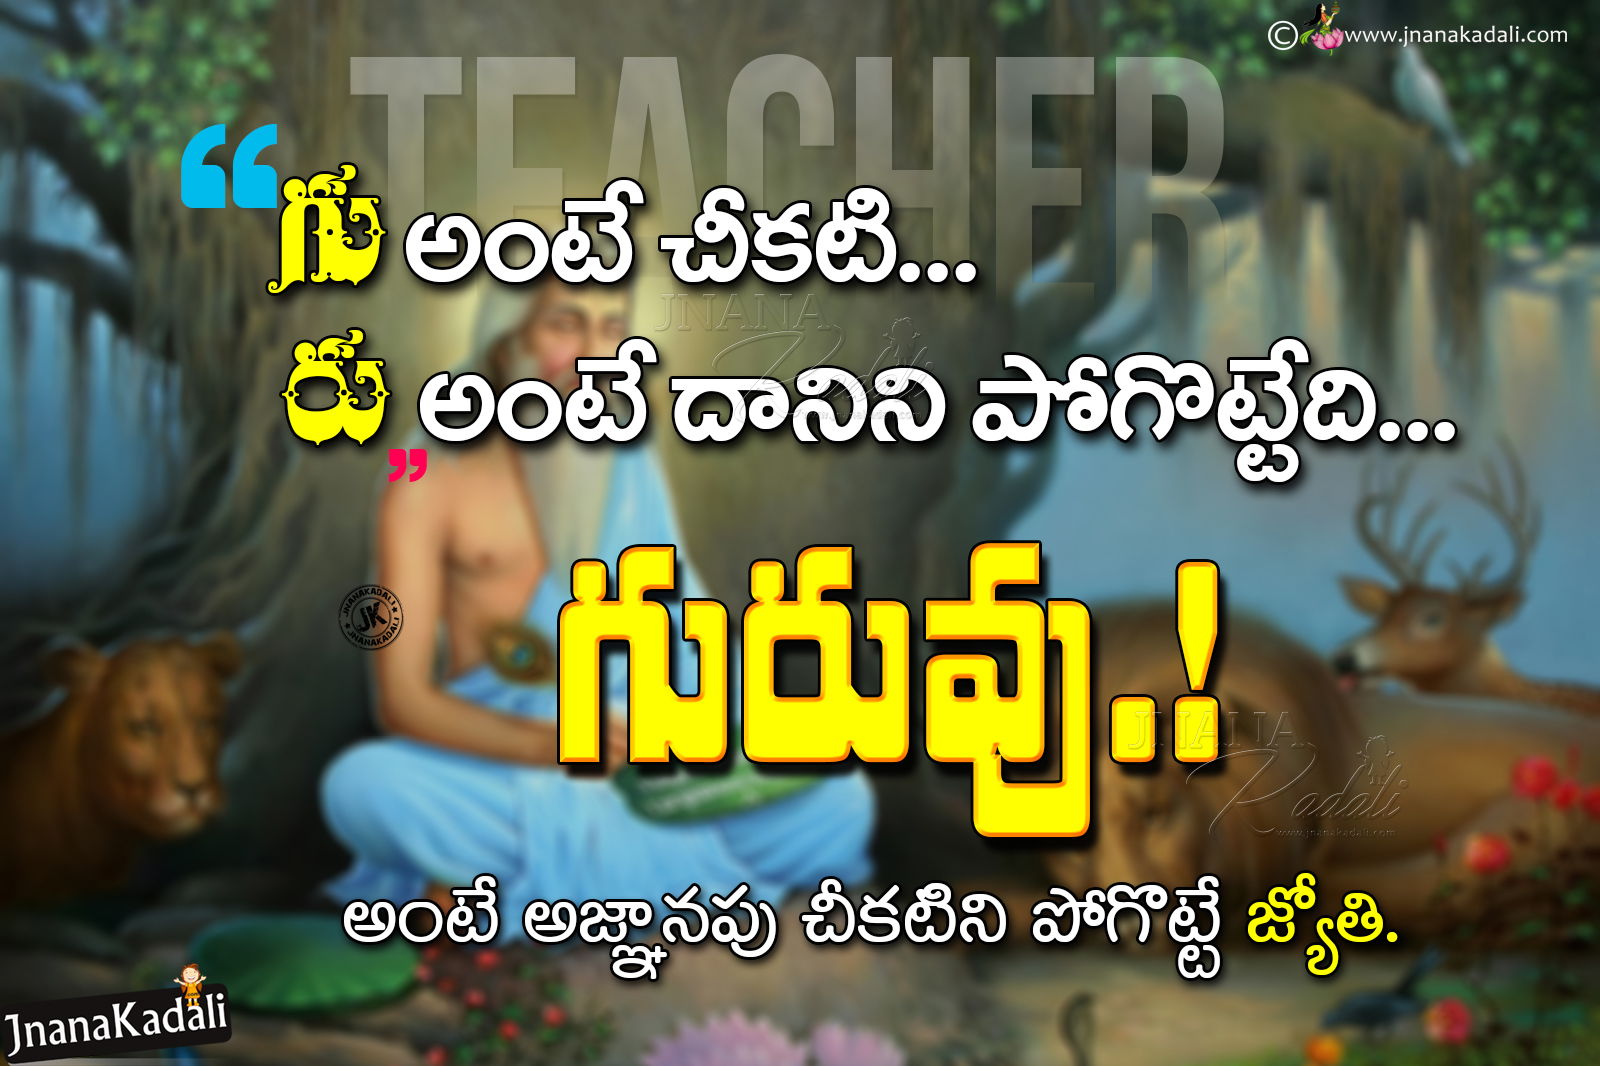 Most Satisfying Meaning Of A Teacher The Meaning Of Guru In Telugu